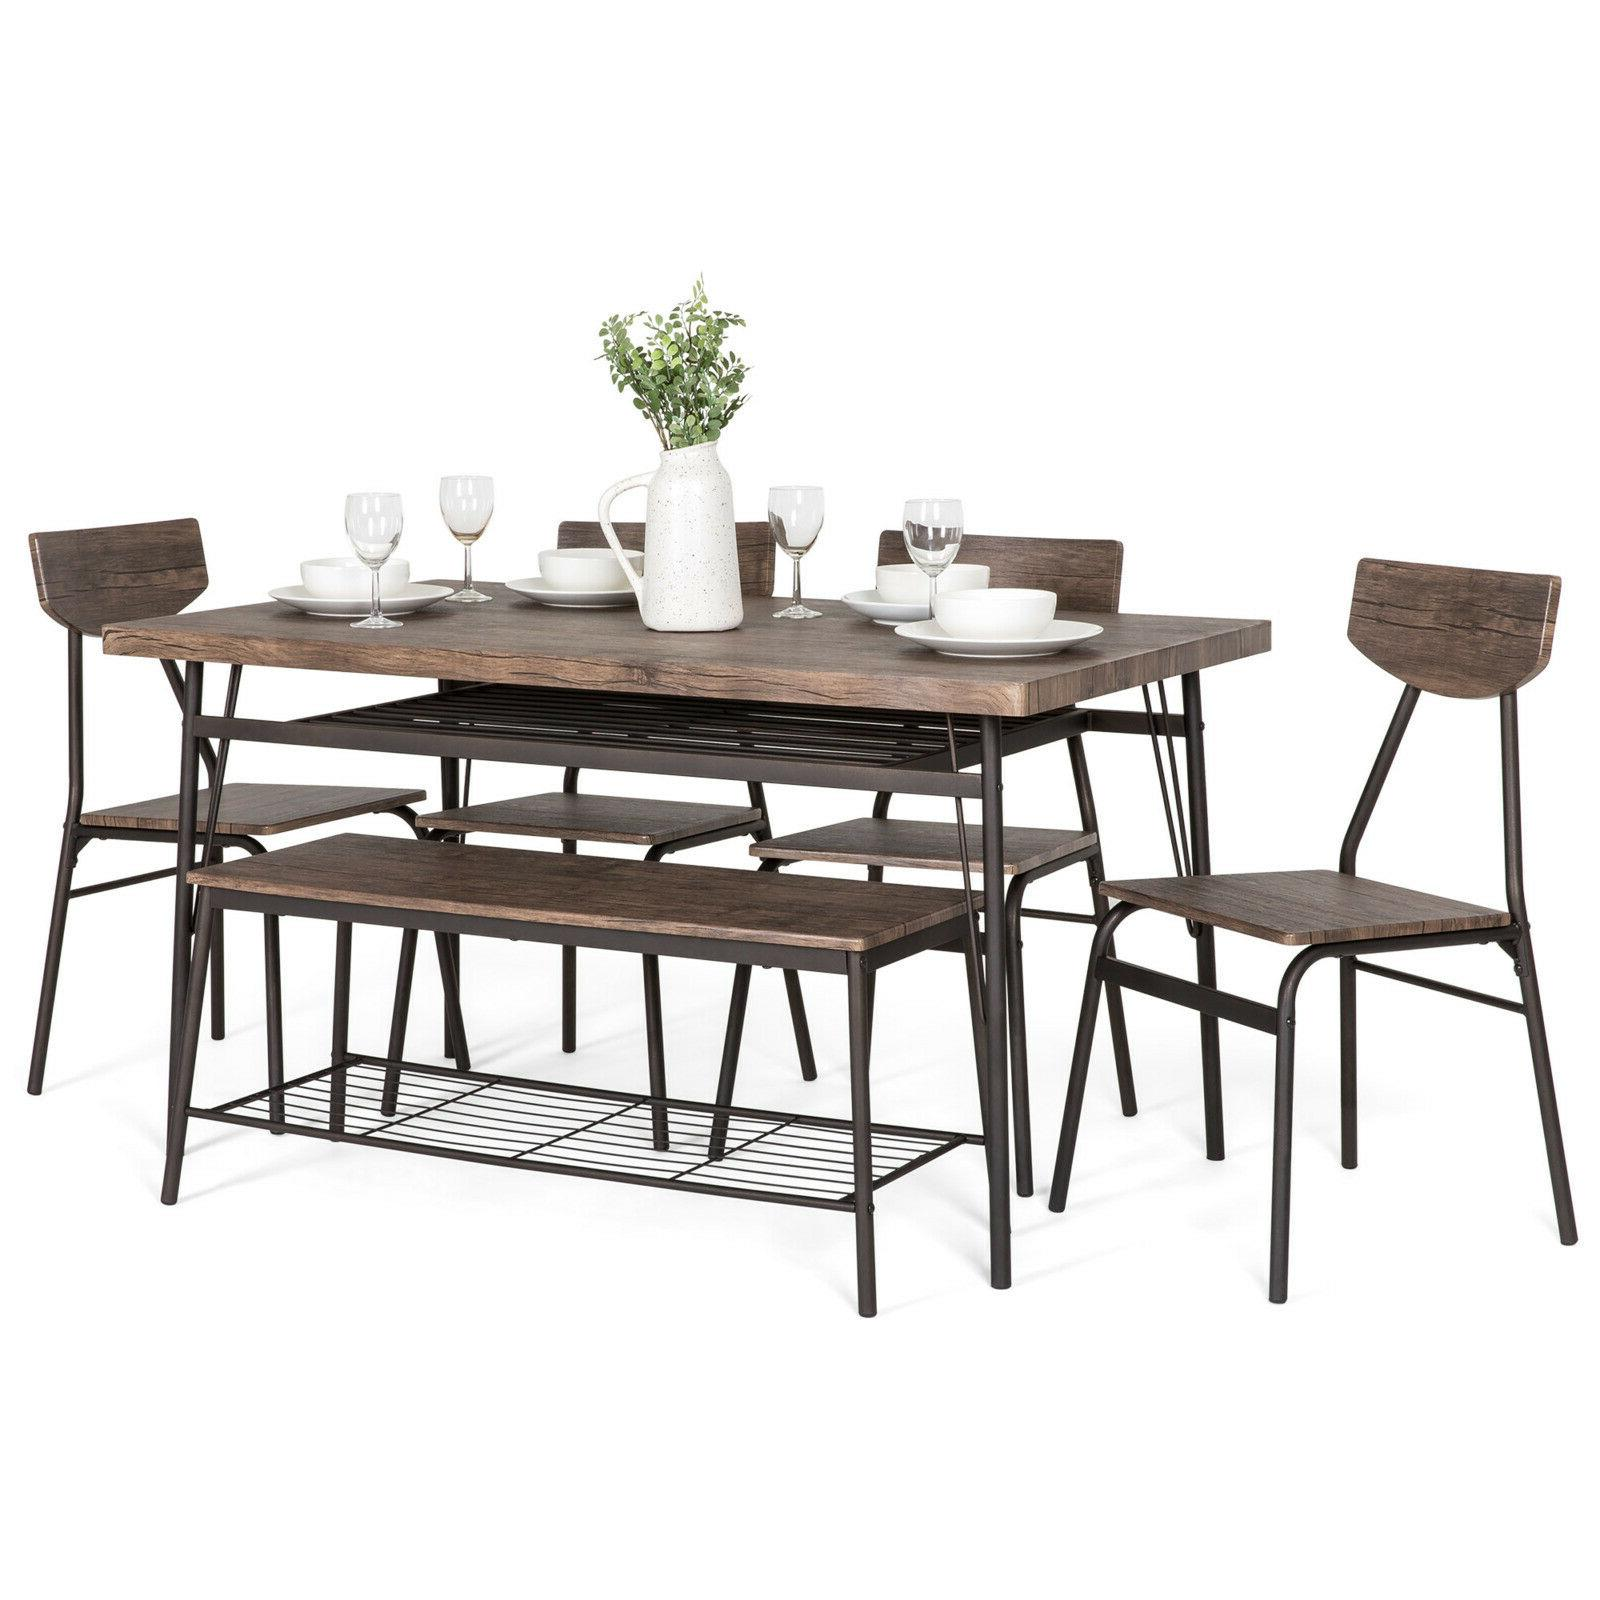 bcp 6 piece modern dining set w